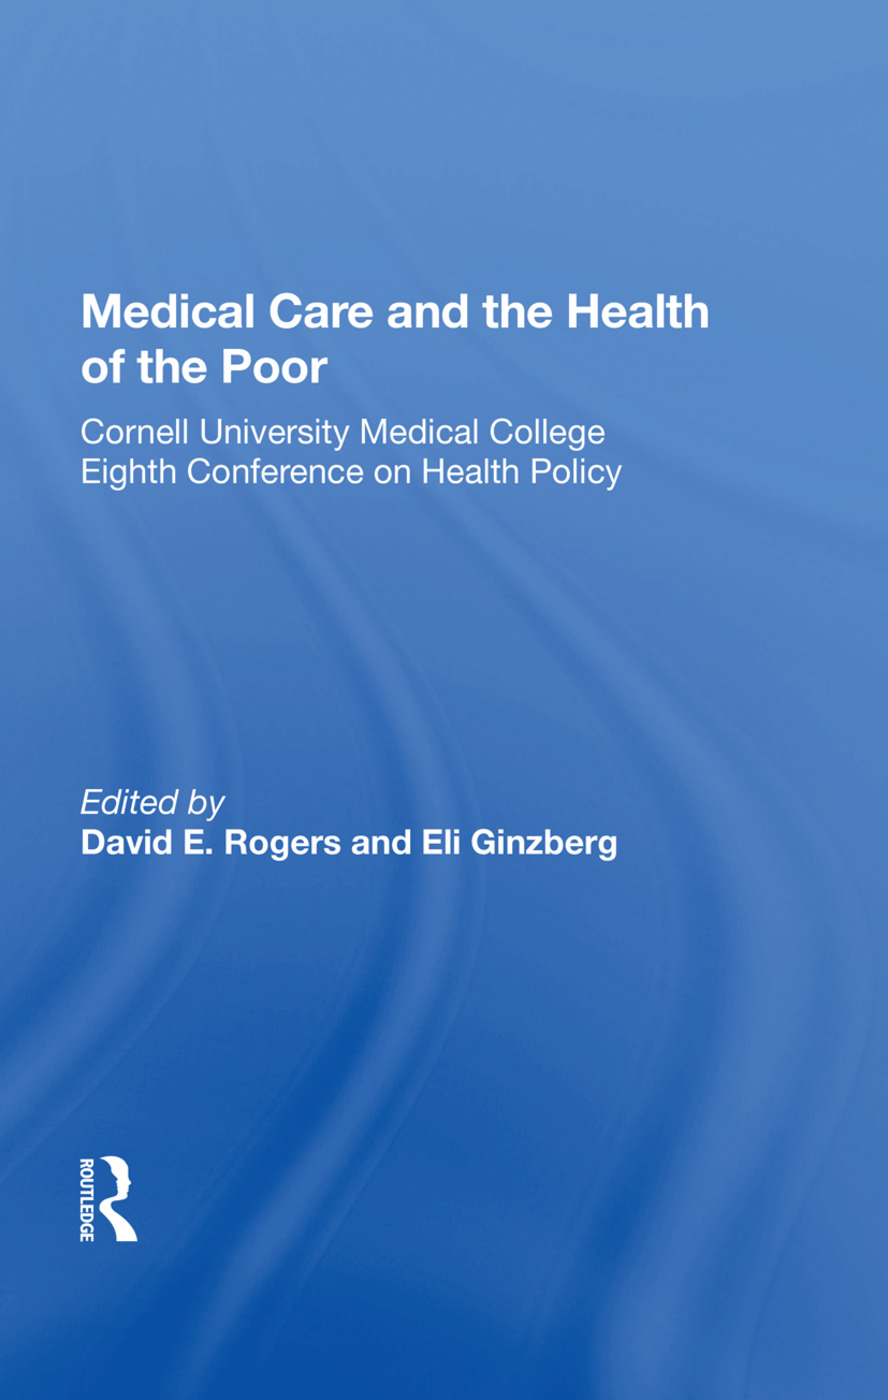 Medical Care and the Health of the Poor: Cornell University Medical College Eighth Conference on Health Policy, 1st Edition (Hardback) book cover